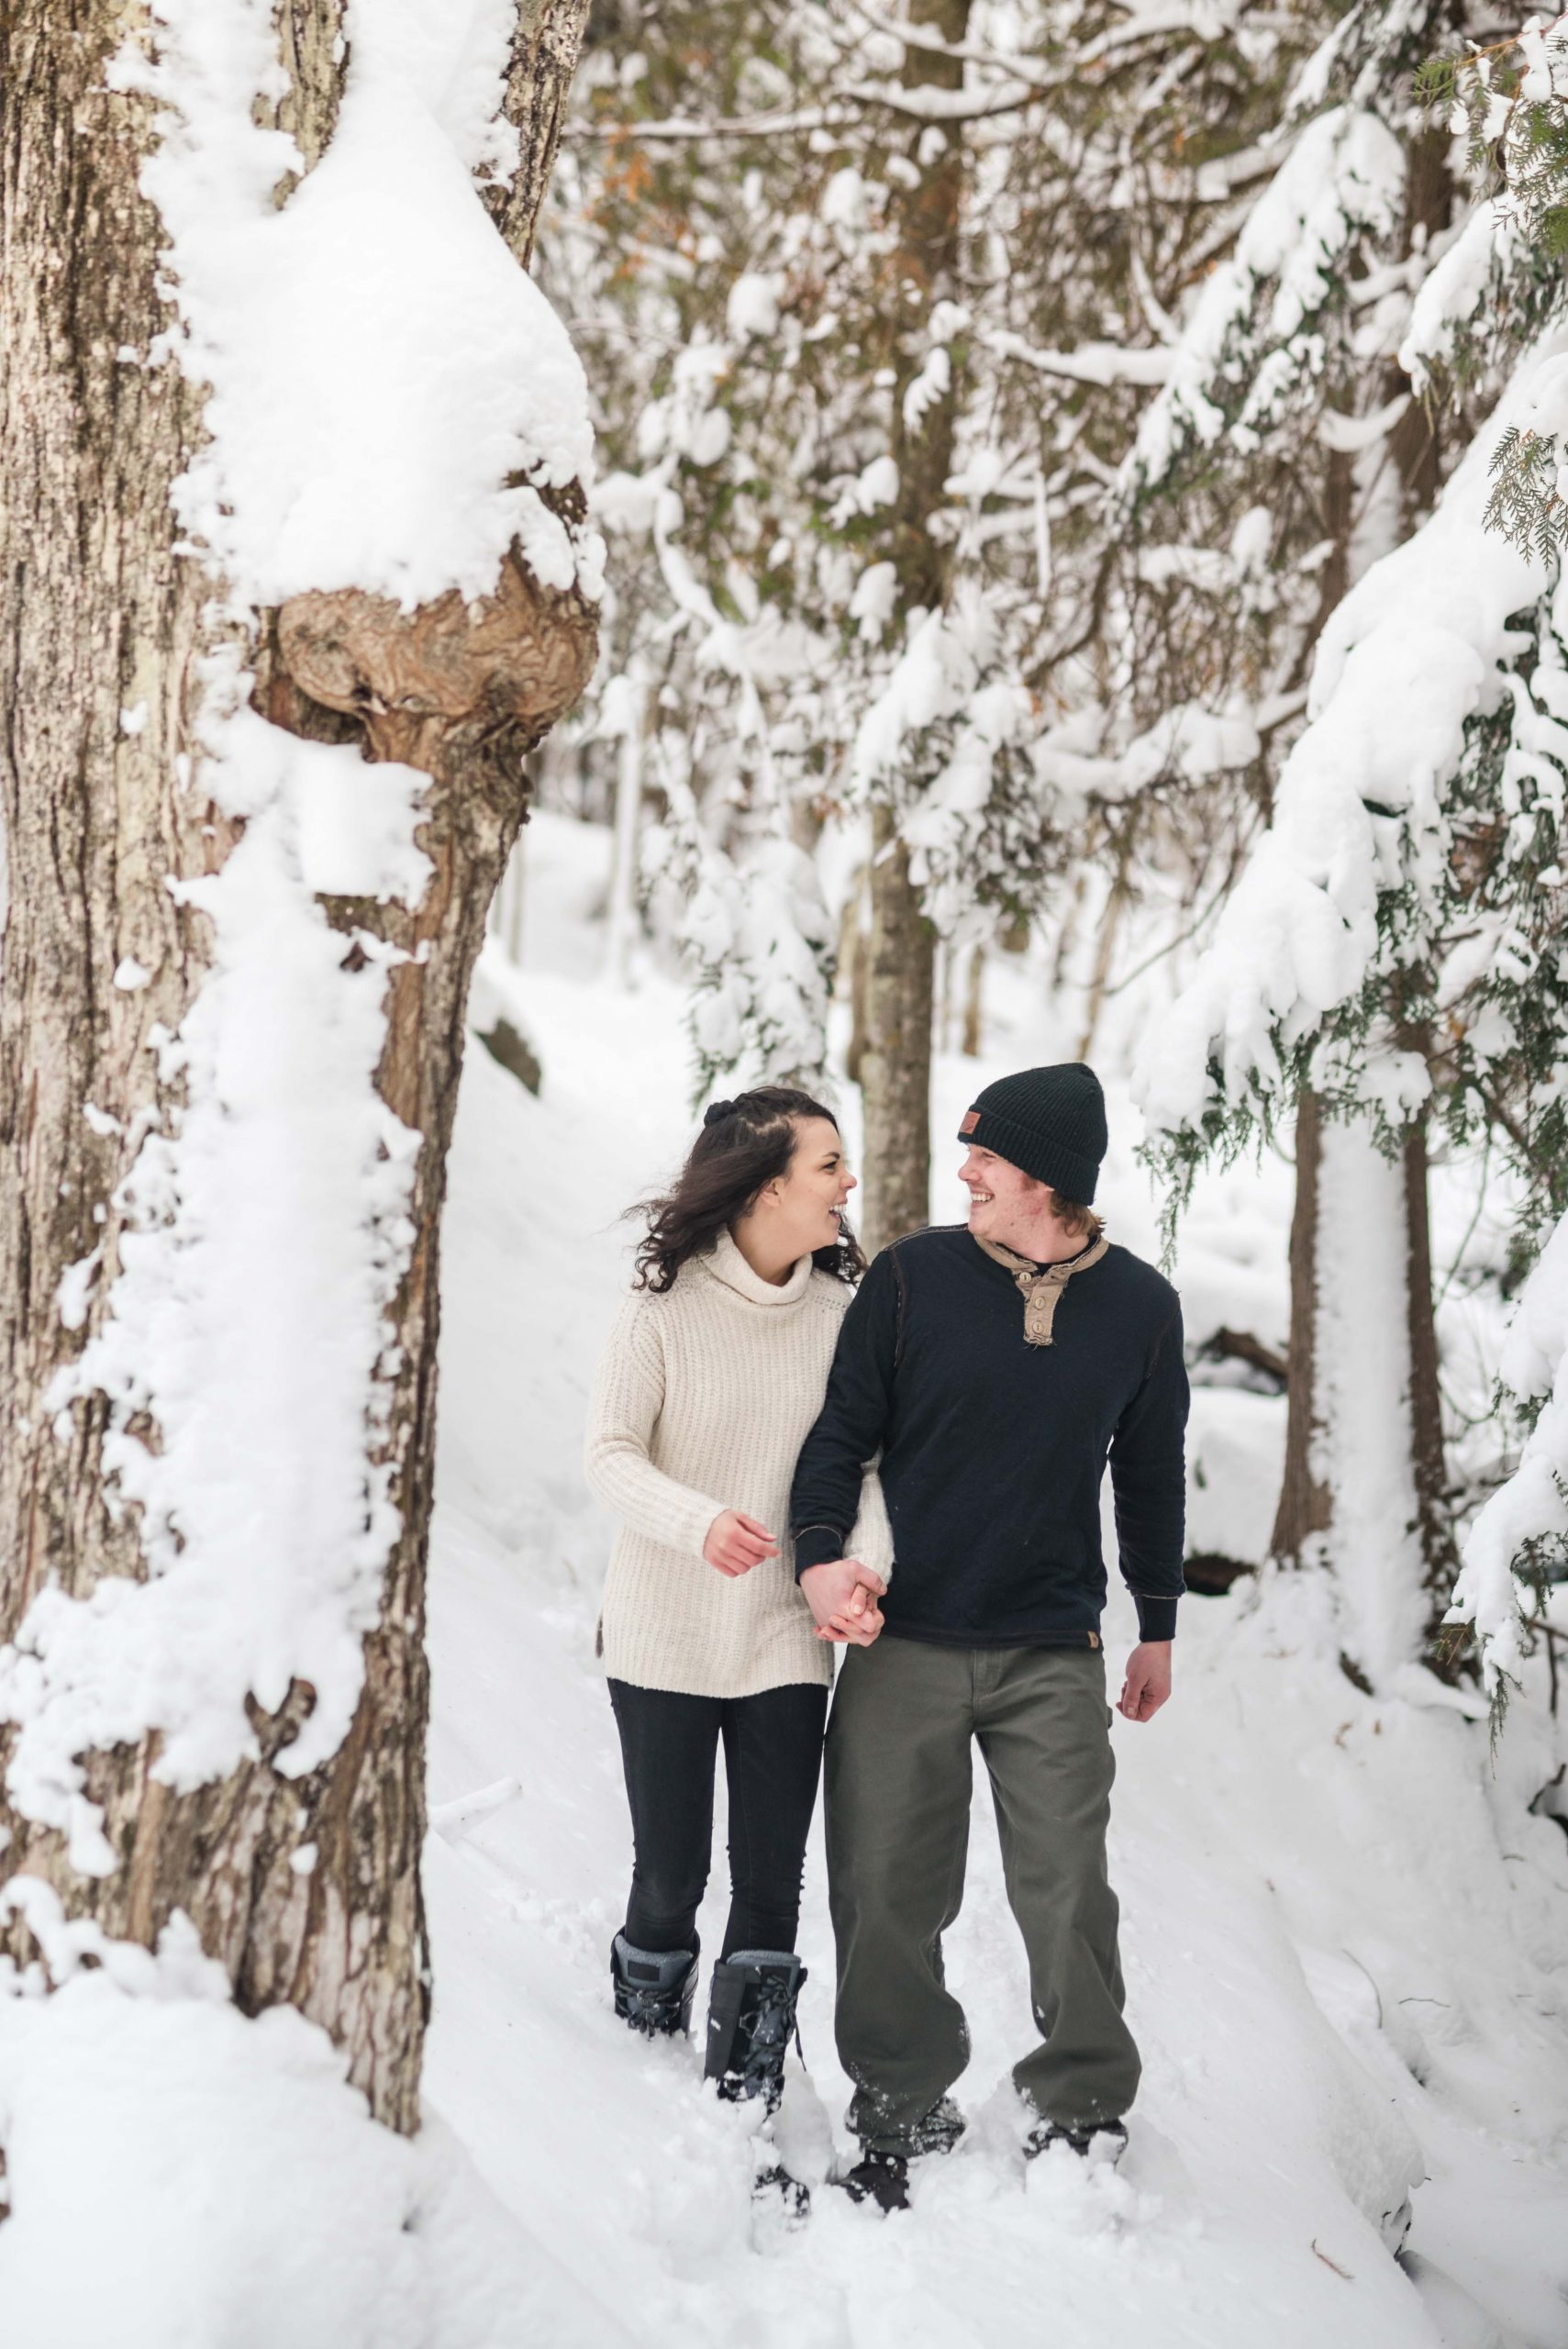 Husband and wife enjoy a snowy walk in the woods